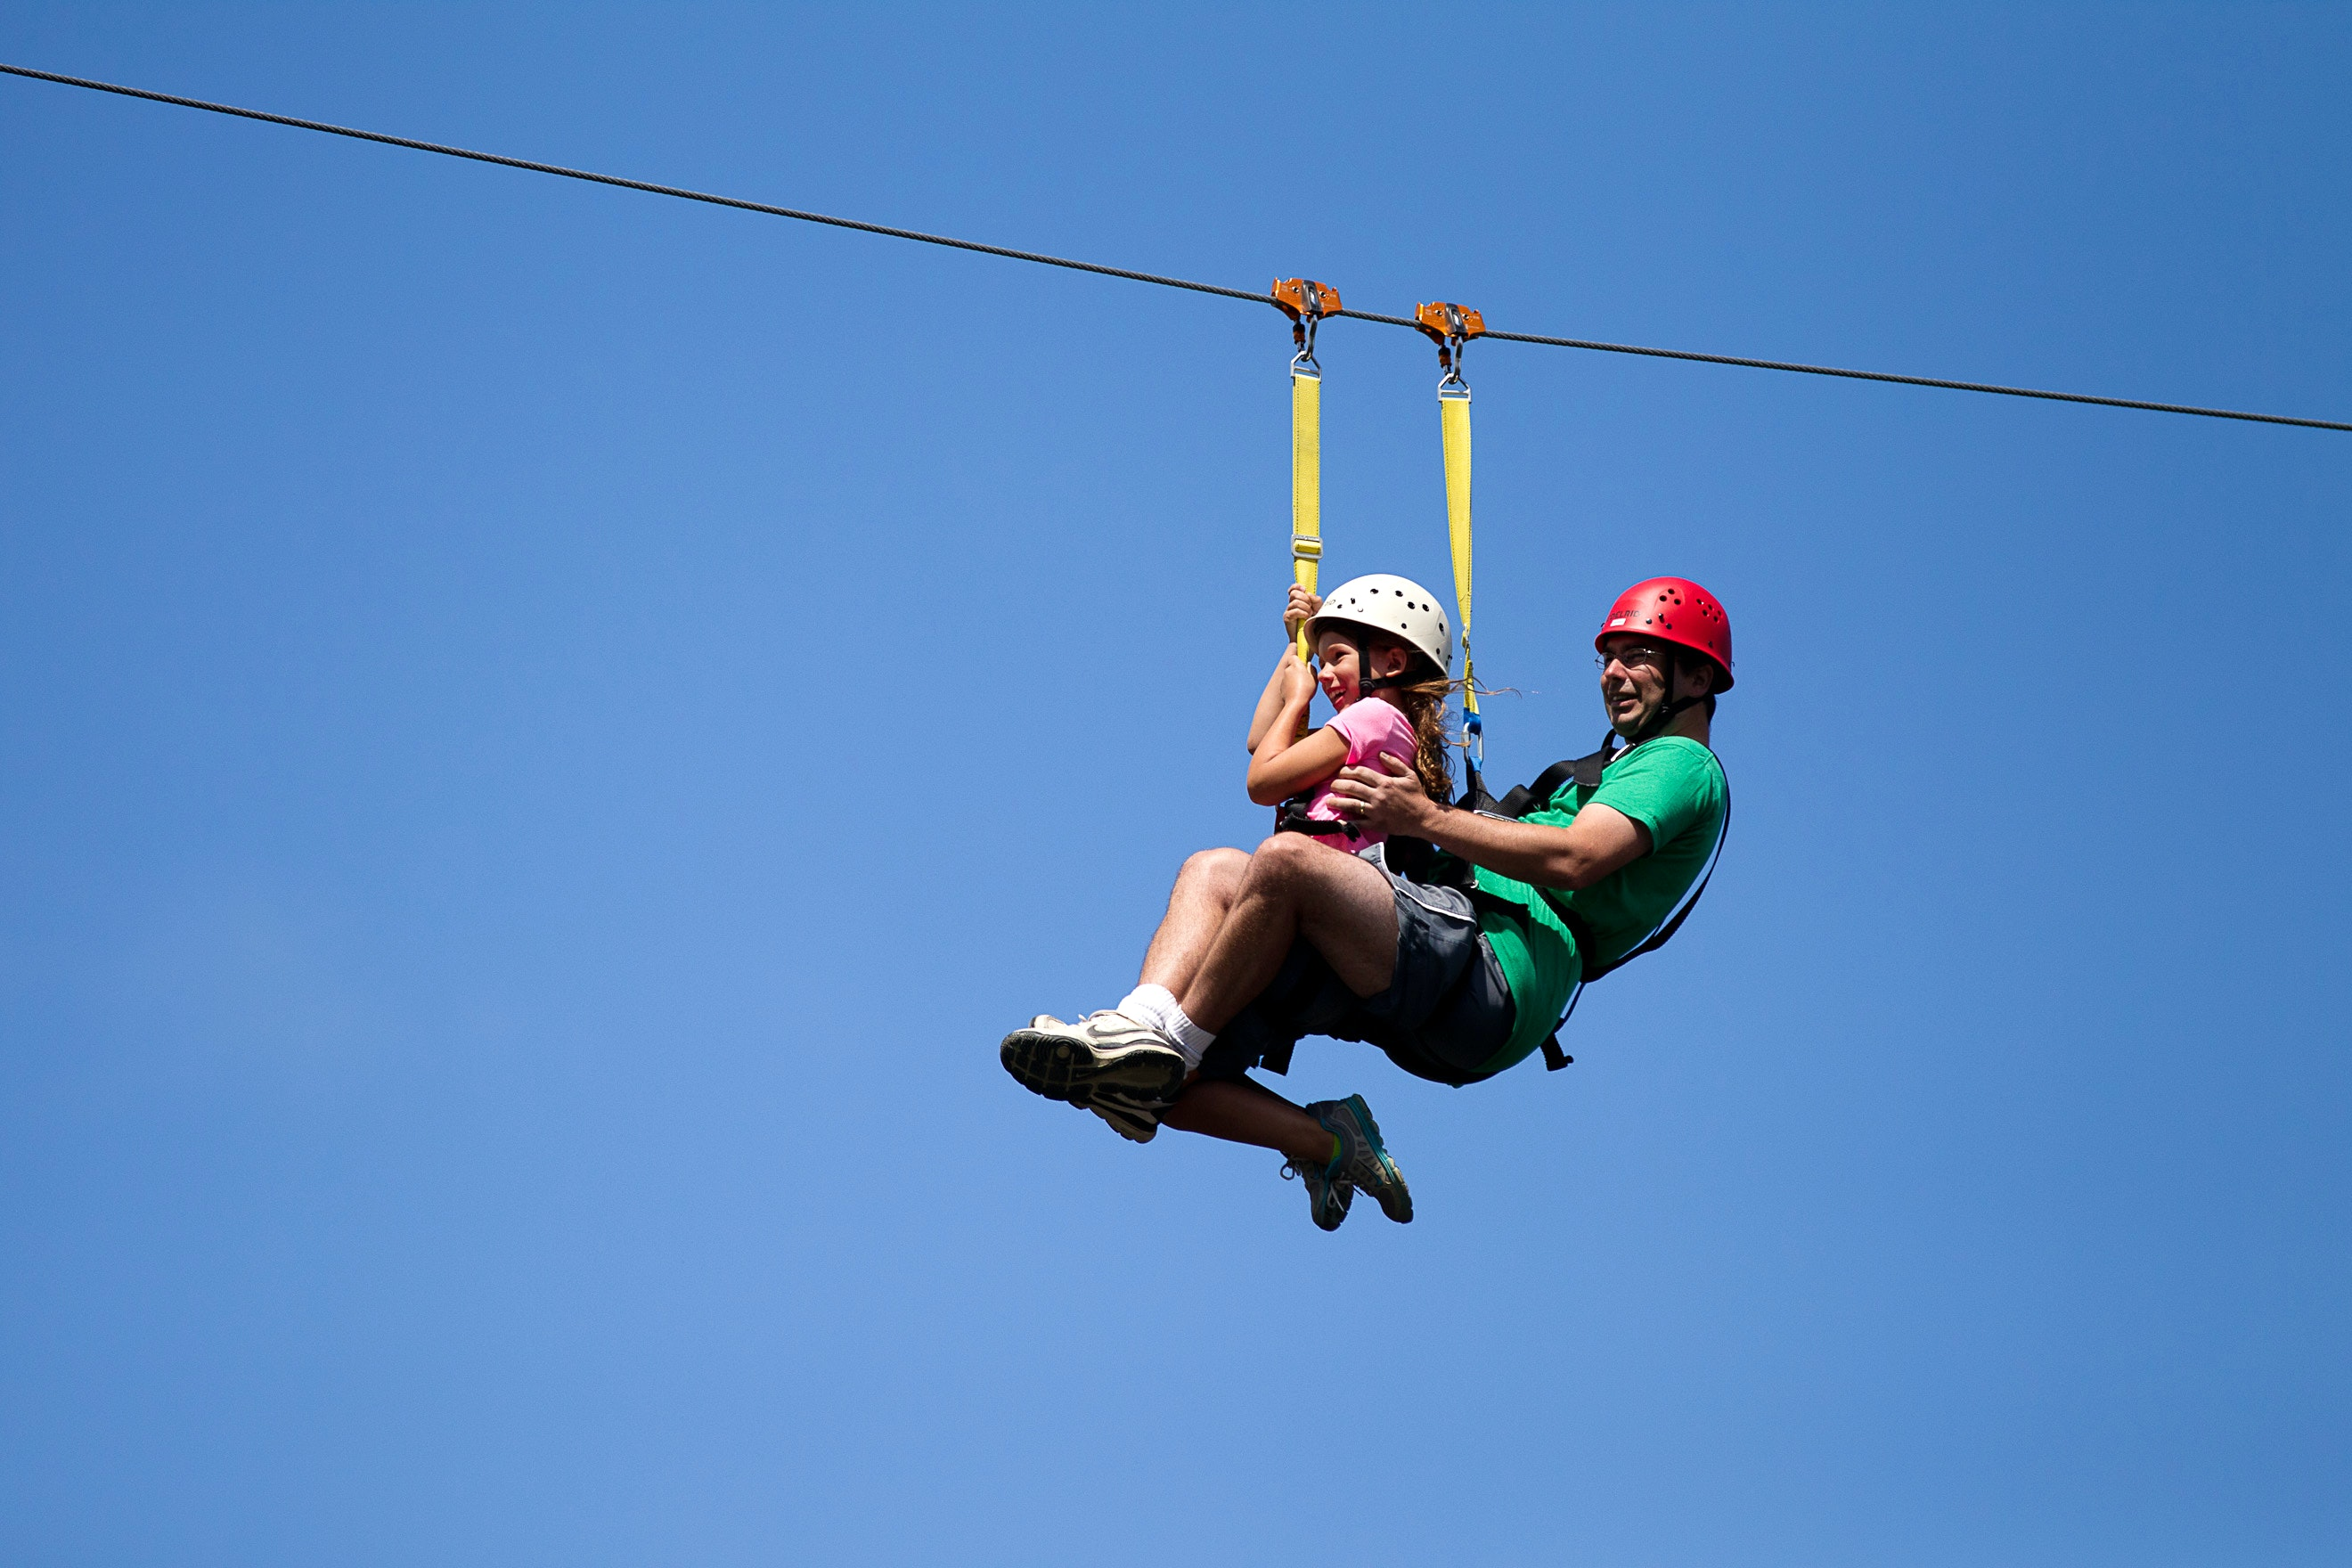 A man and girl ziplining on a sunny day